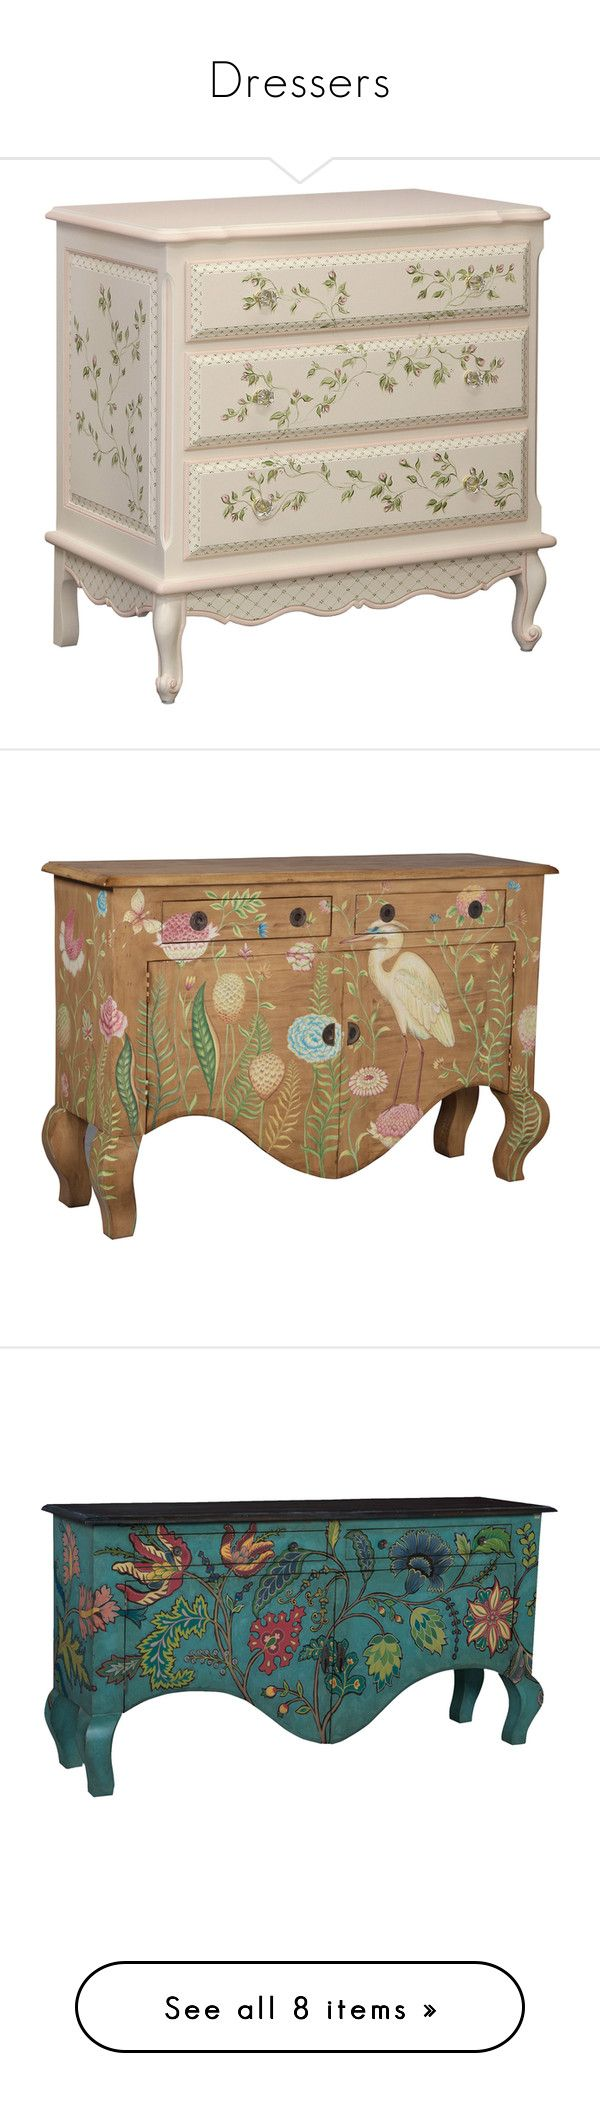 """""""Dressers"""" by loves-elephants ❤ liked on Polyvore featuring furniture, home, storage & shelves, sideboards, tropical furniture, handpainted furniture, mahogany buffet, hardware furniture, butterfly furniture and colorful furniture"""